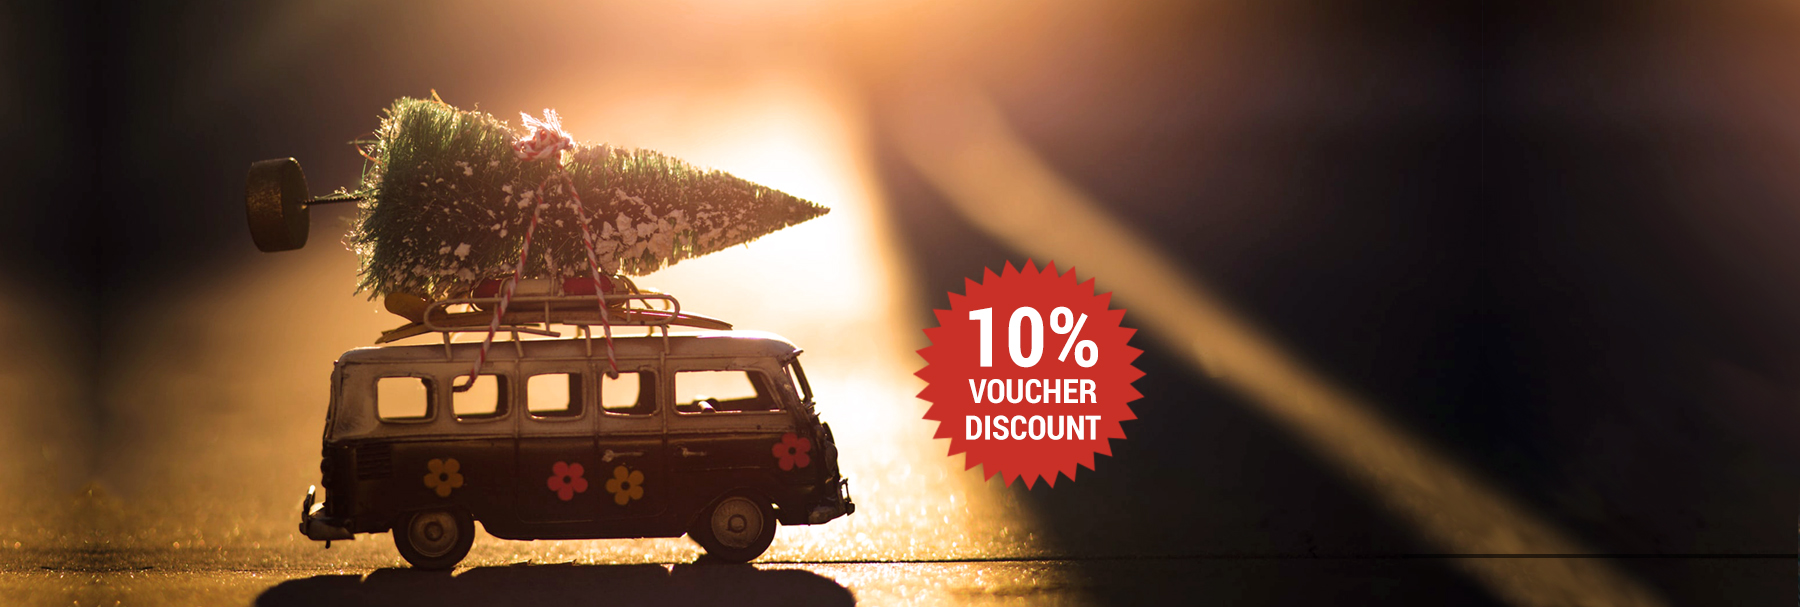 Lazy Days Christmas Gift Voucher Special